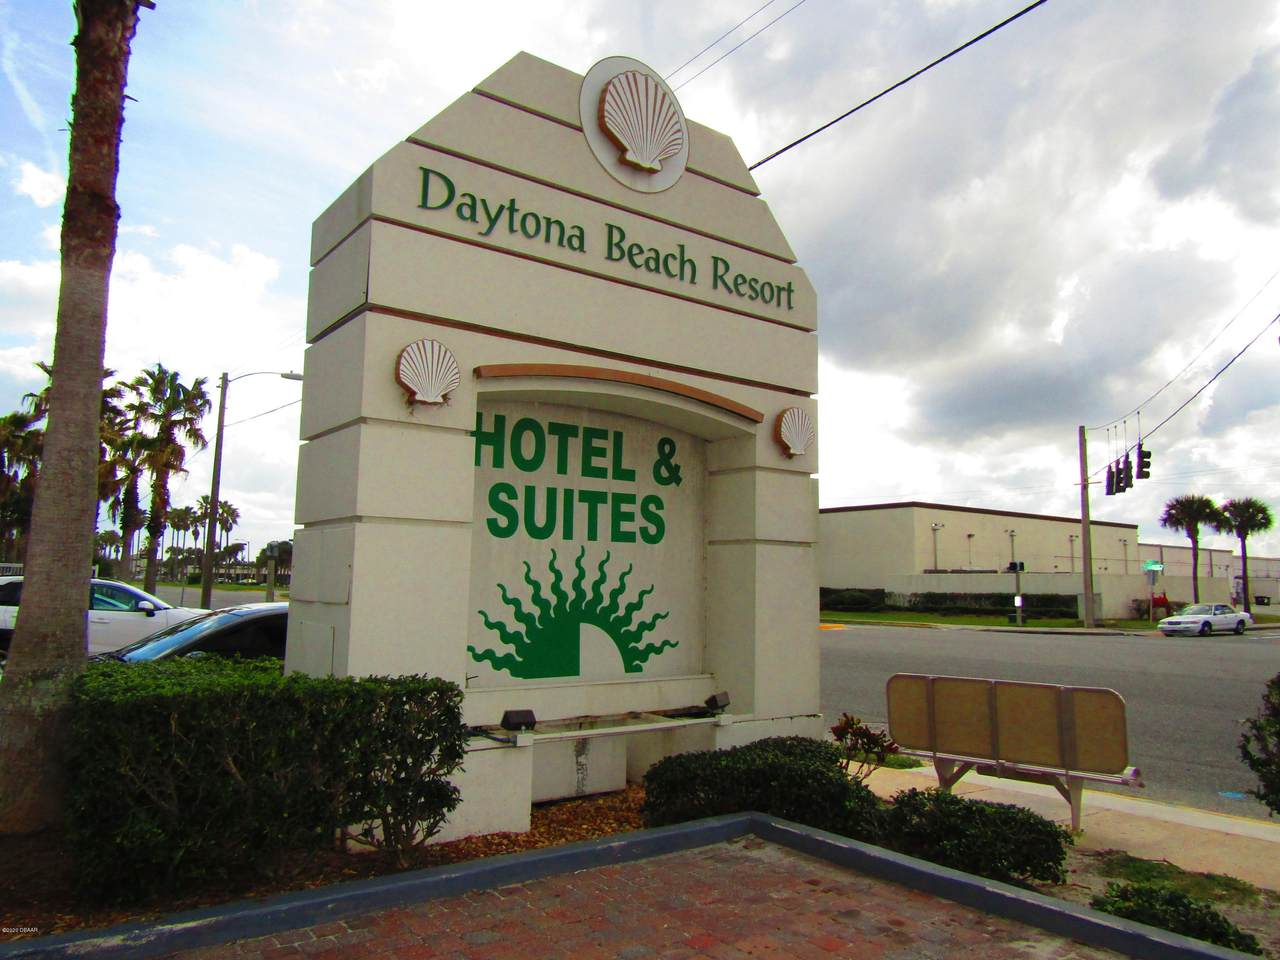 https://bt-photos.global.ssl.fastly.net/daytonabeach/1280_boomver_2_1078249-2.jpg